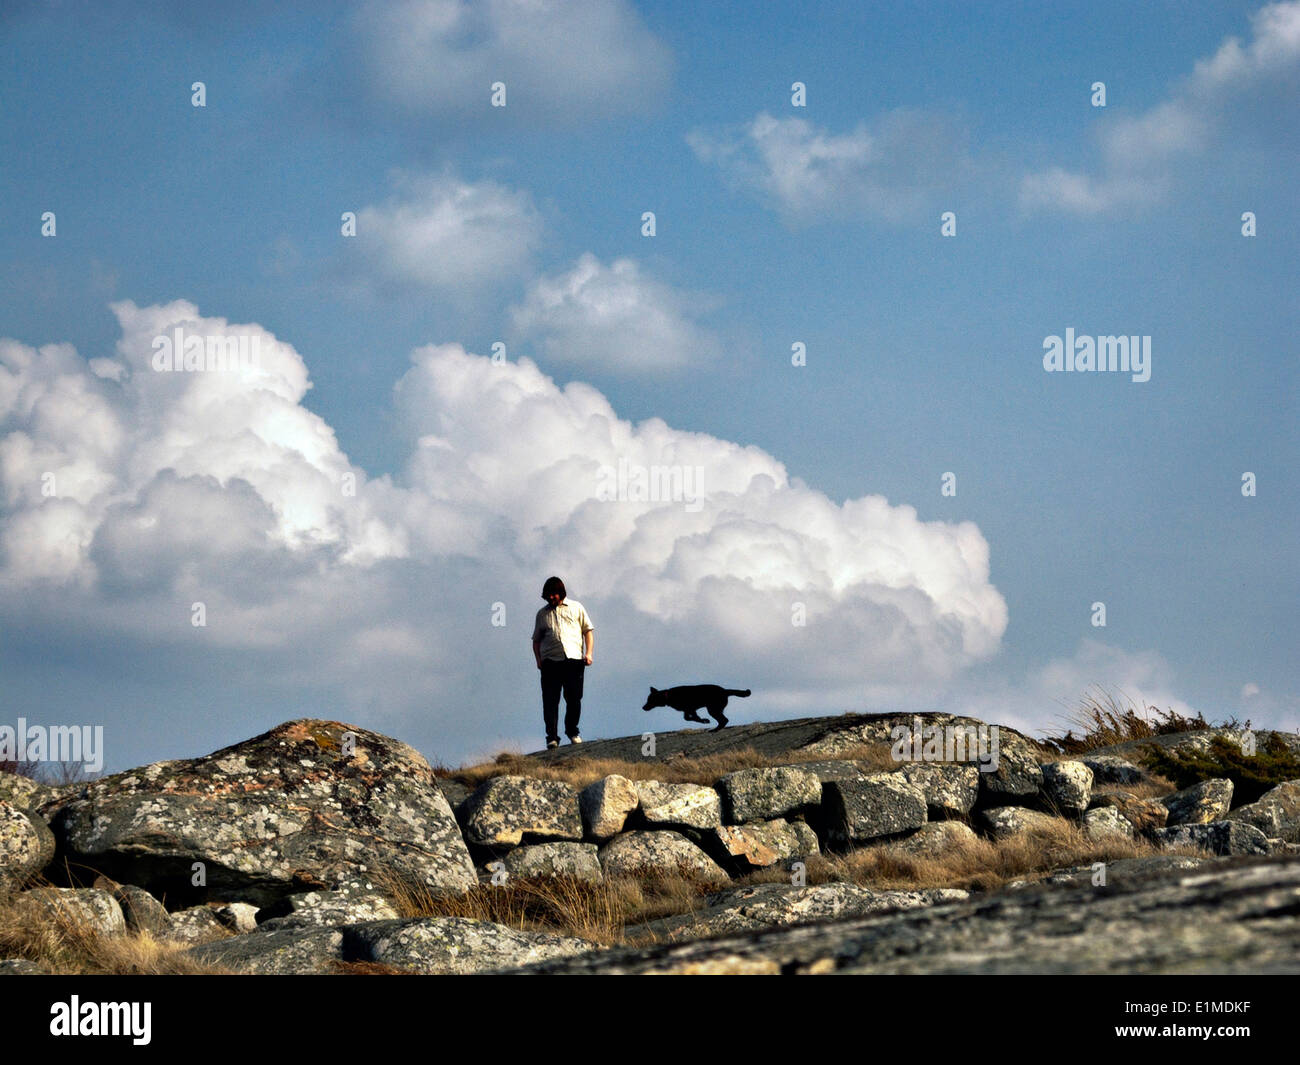 """Torbjörn """"Ebbot"""" Lundberg from the Soundtrack of our lives with my dog Fanny walking the cliffs in Särö, Sweden. - Stock Image"""